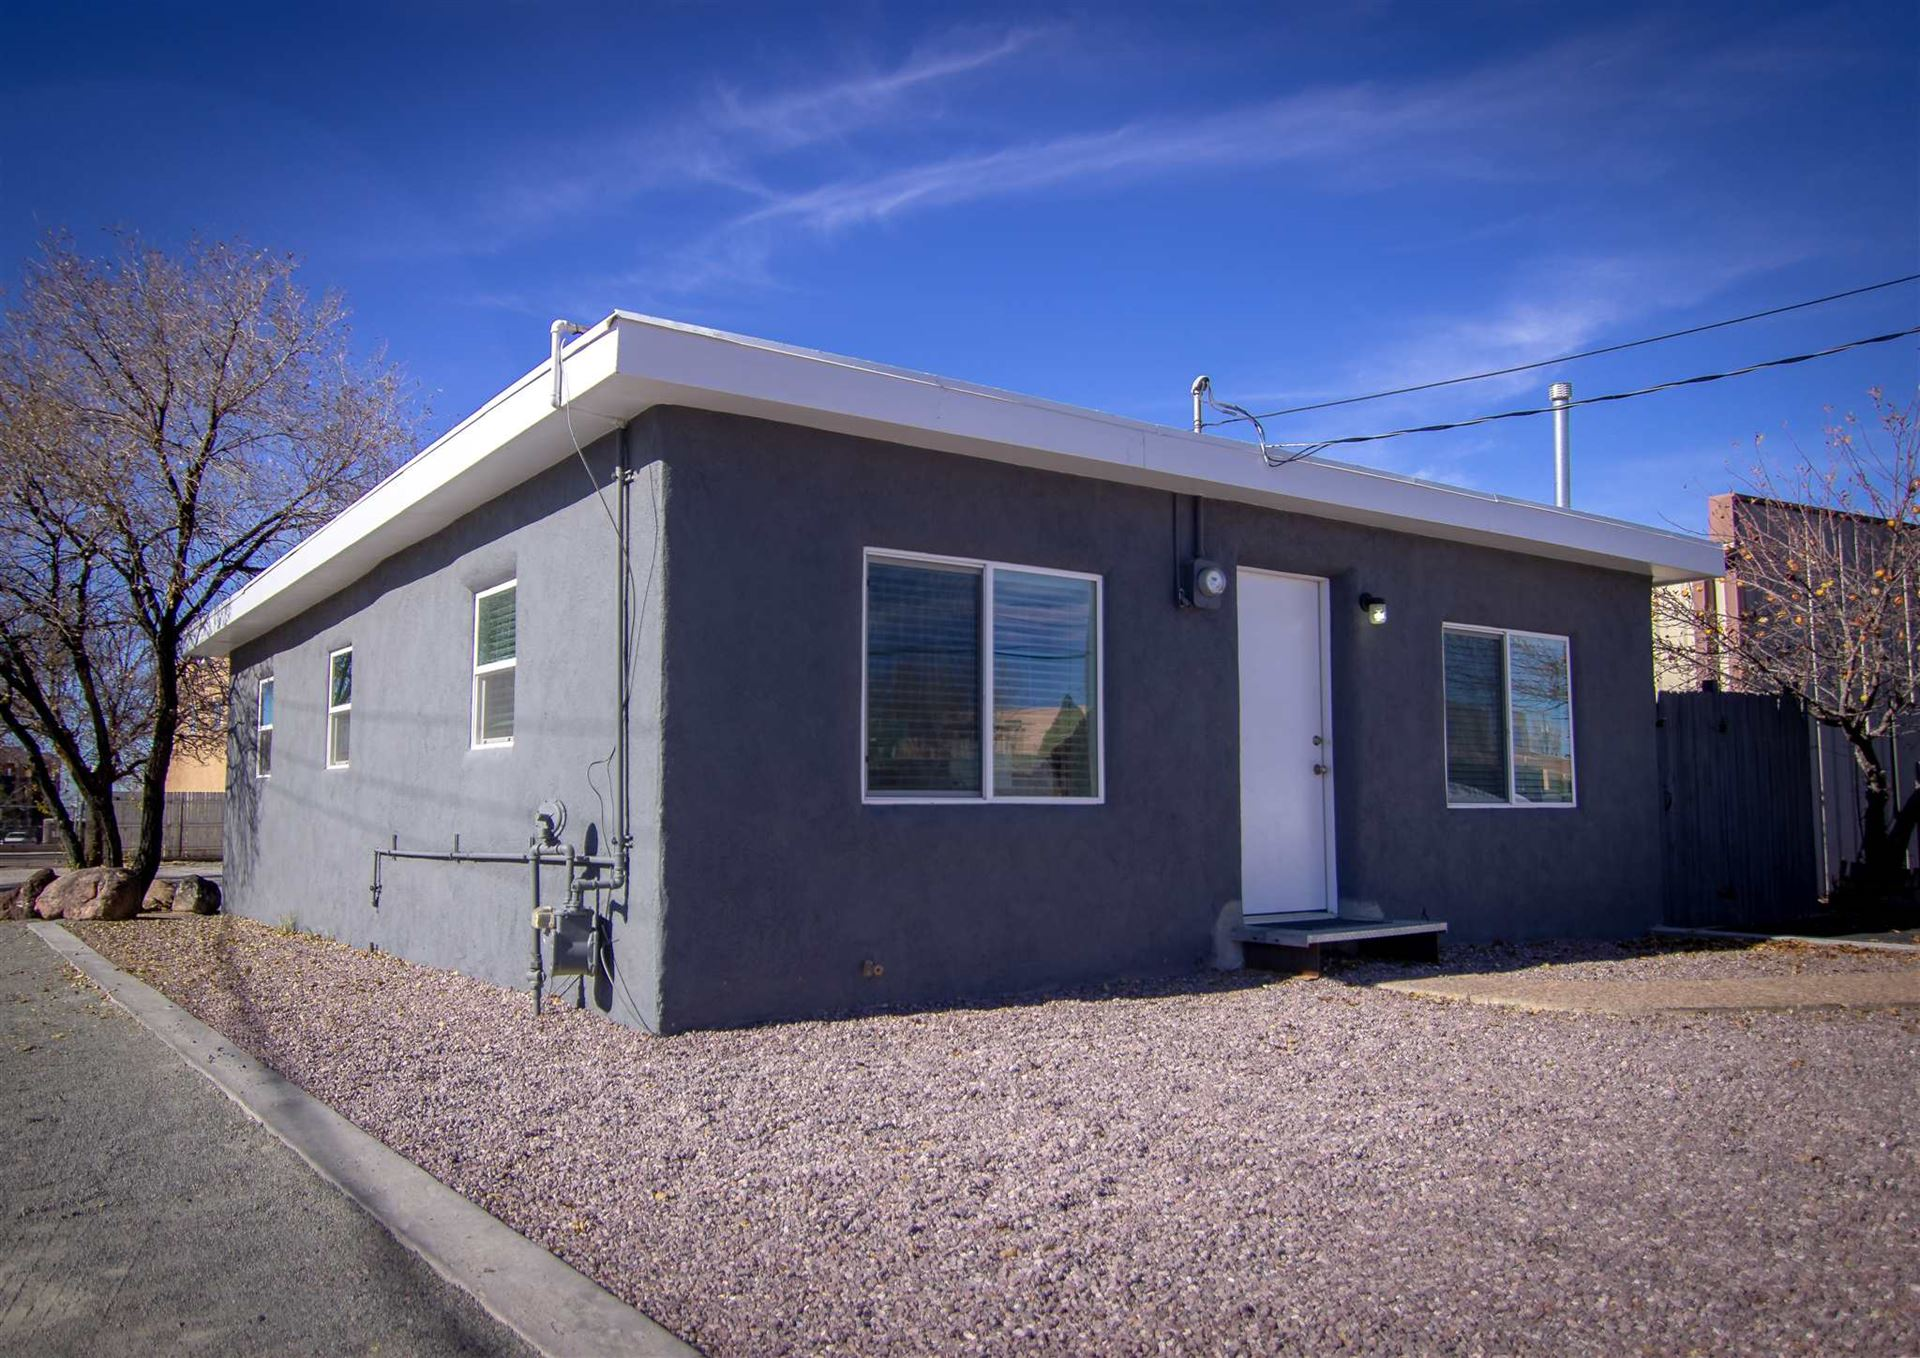 1526 5th St., Santa Fe, NM 87505 - #: 201905137